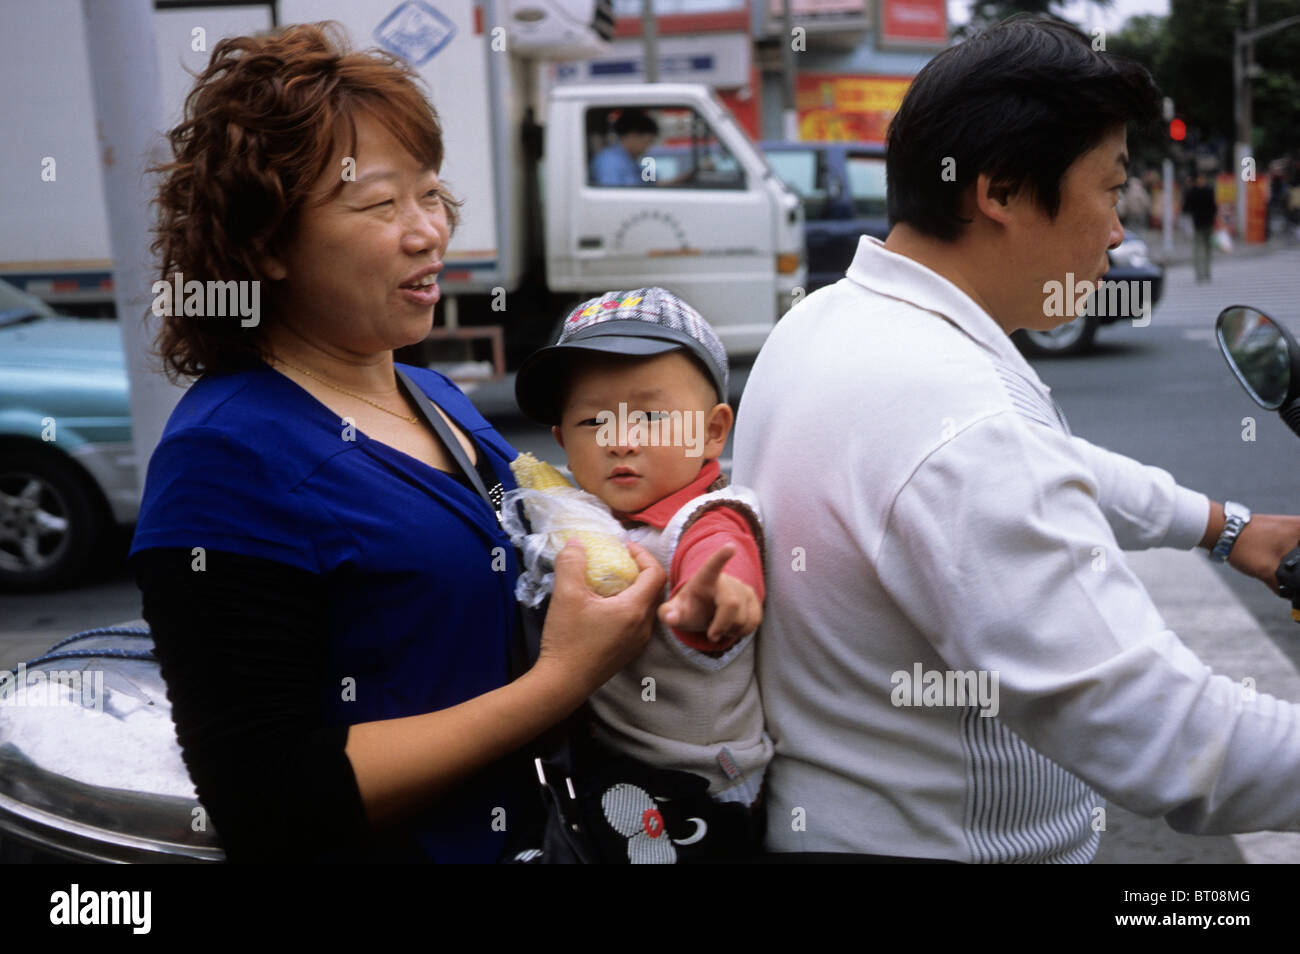 A little boy on an electric cycle with his family members in Shanghai, China.  2009 - Stock Image